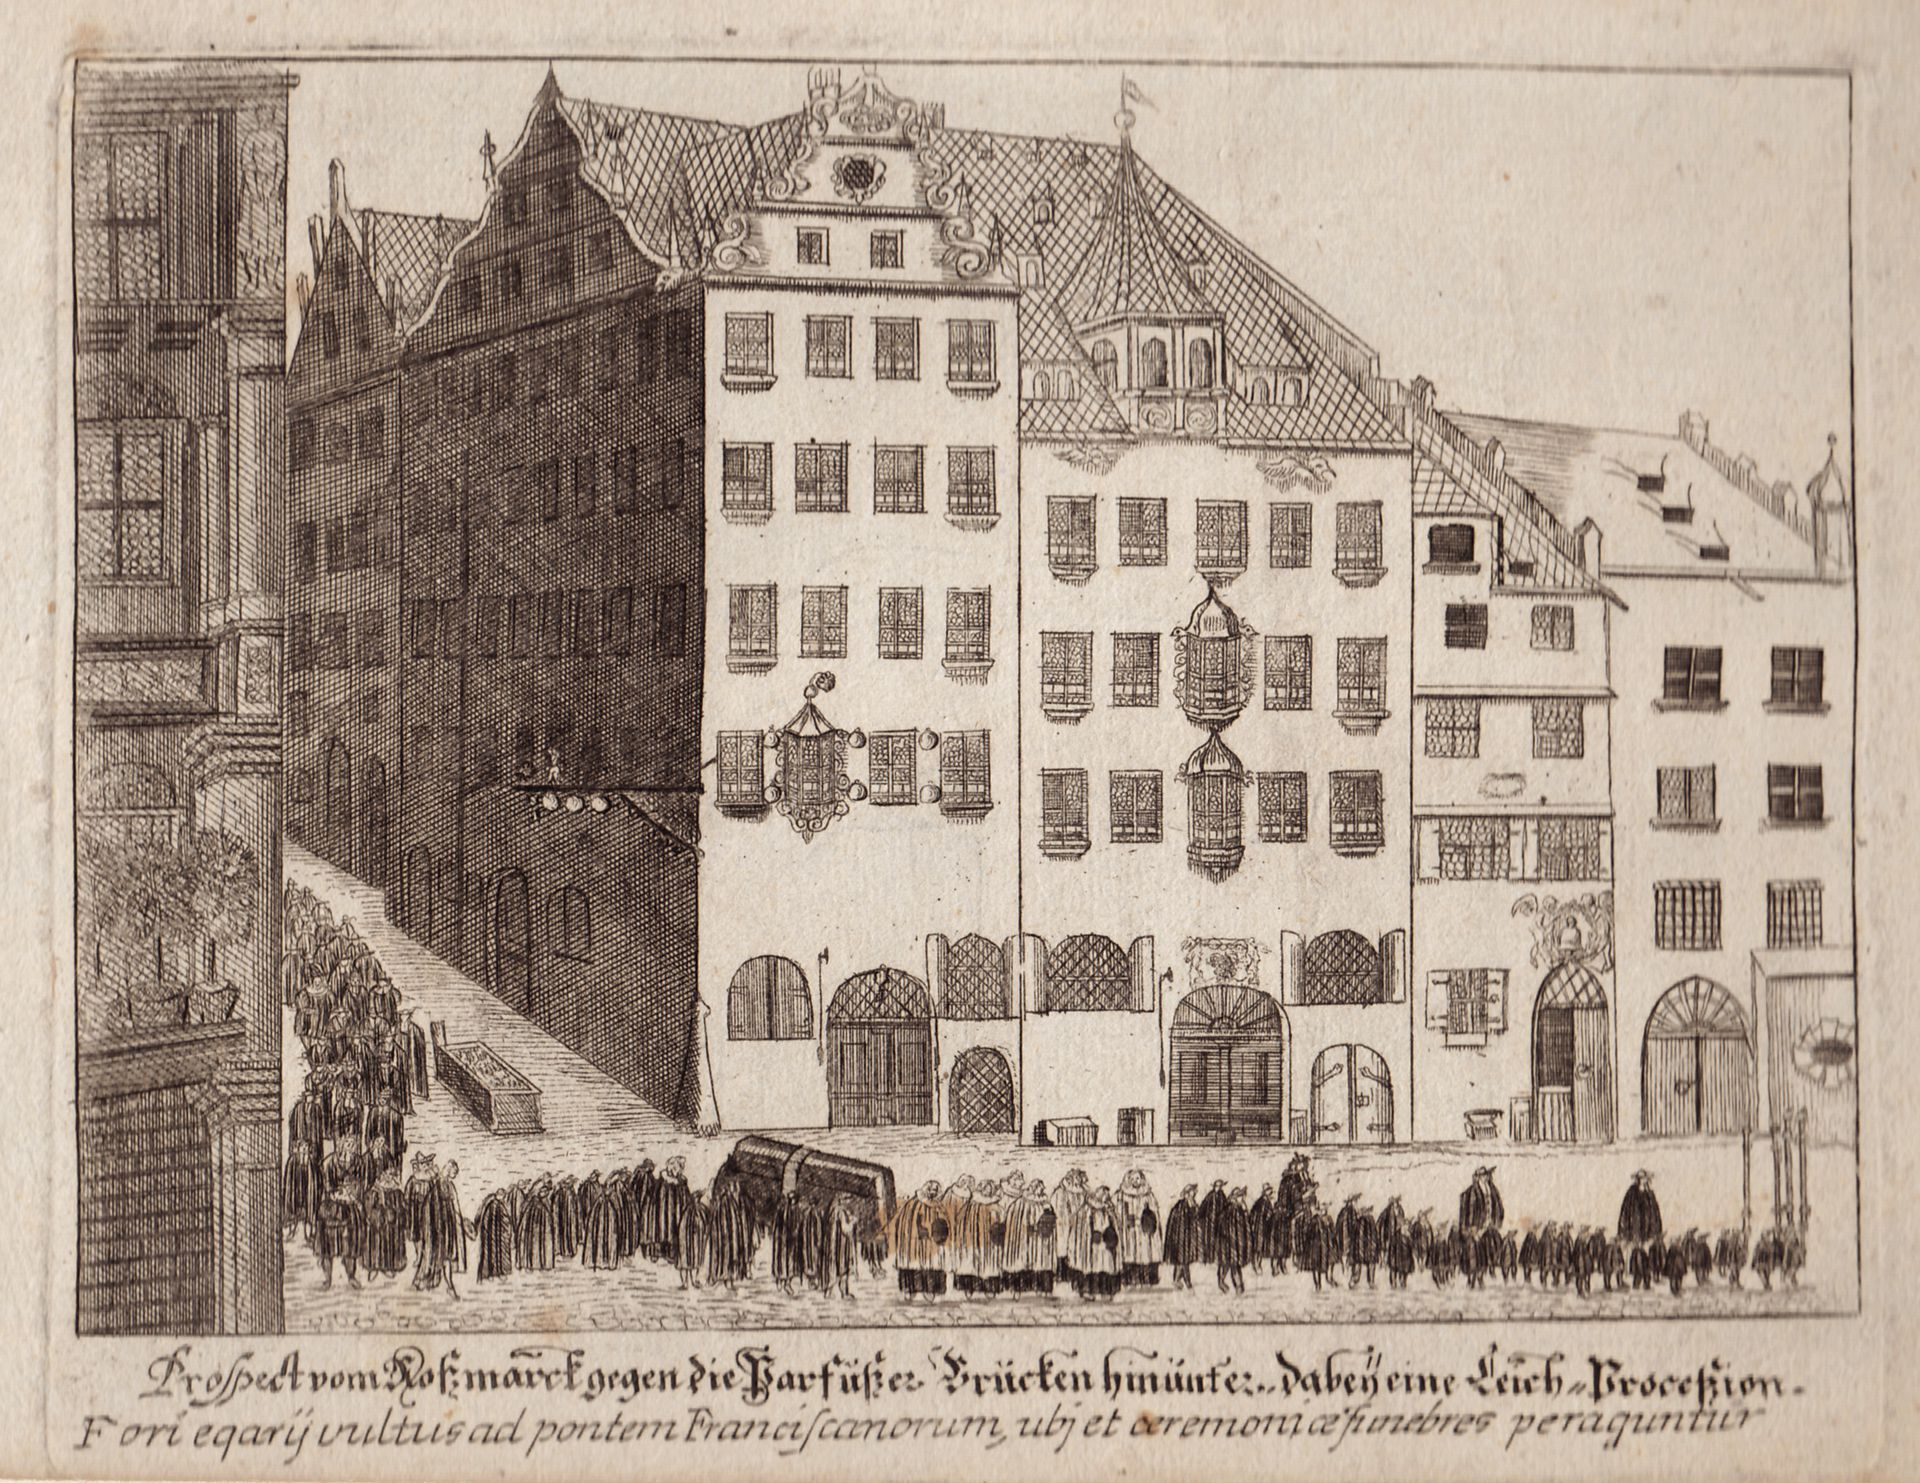 Prospect of the Rossmarkt (Horsemarket) to the Barfüßerbrücke (Grey Friars' Bridge) with funeral procession General view